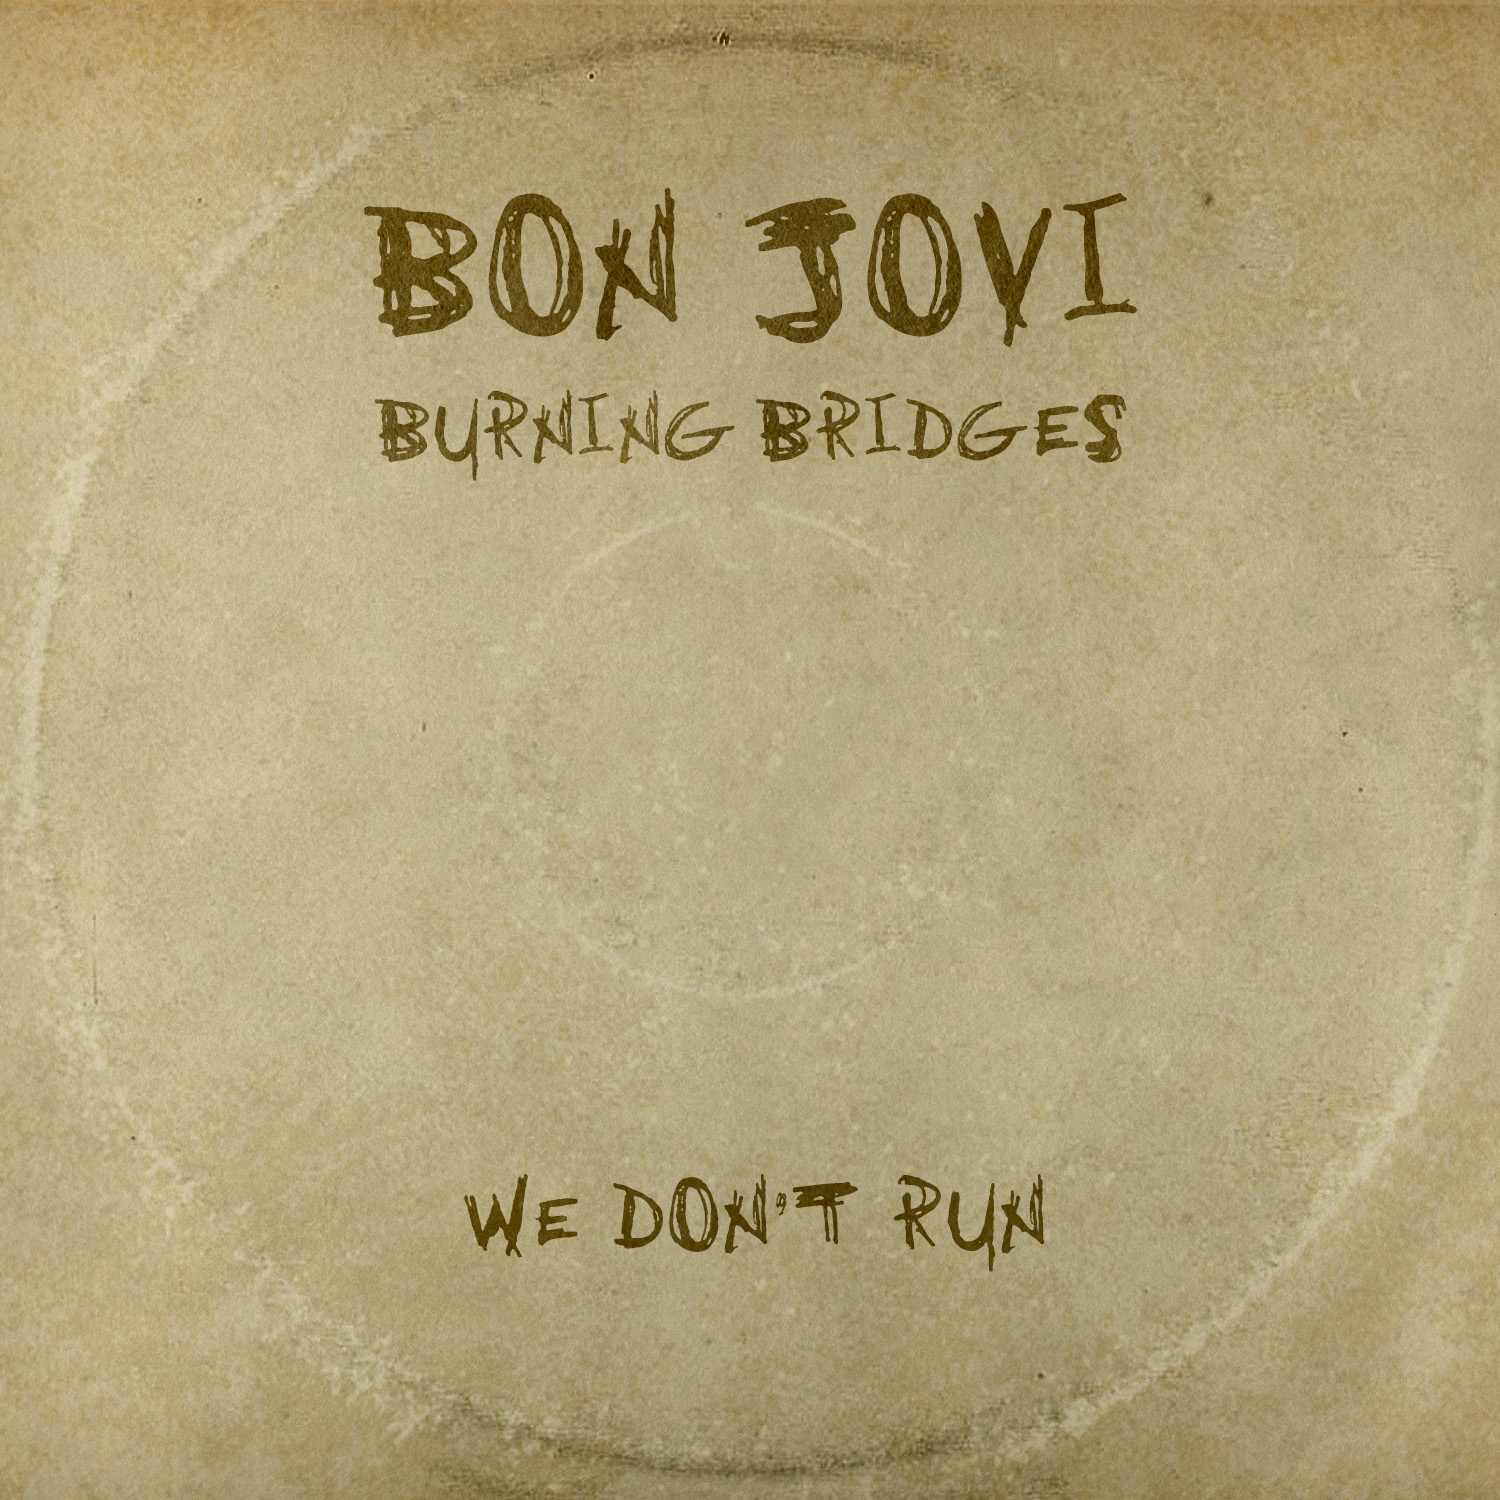 Download Full Album Bon Jovi - Burning Bridges Mp3